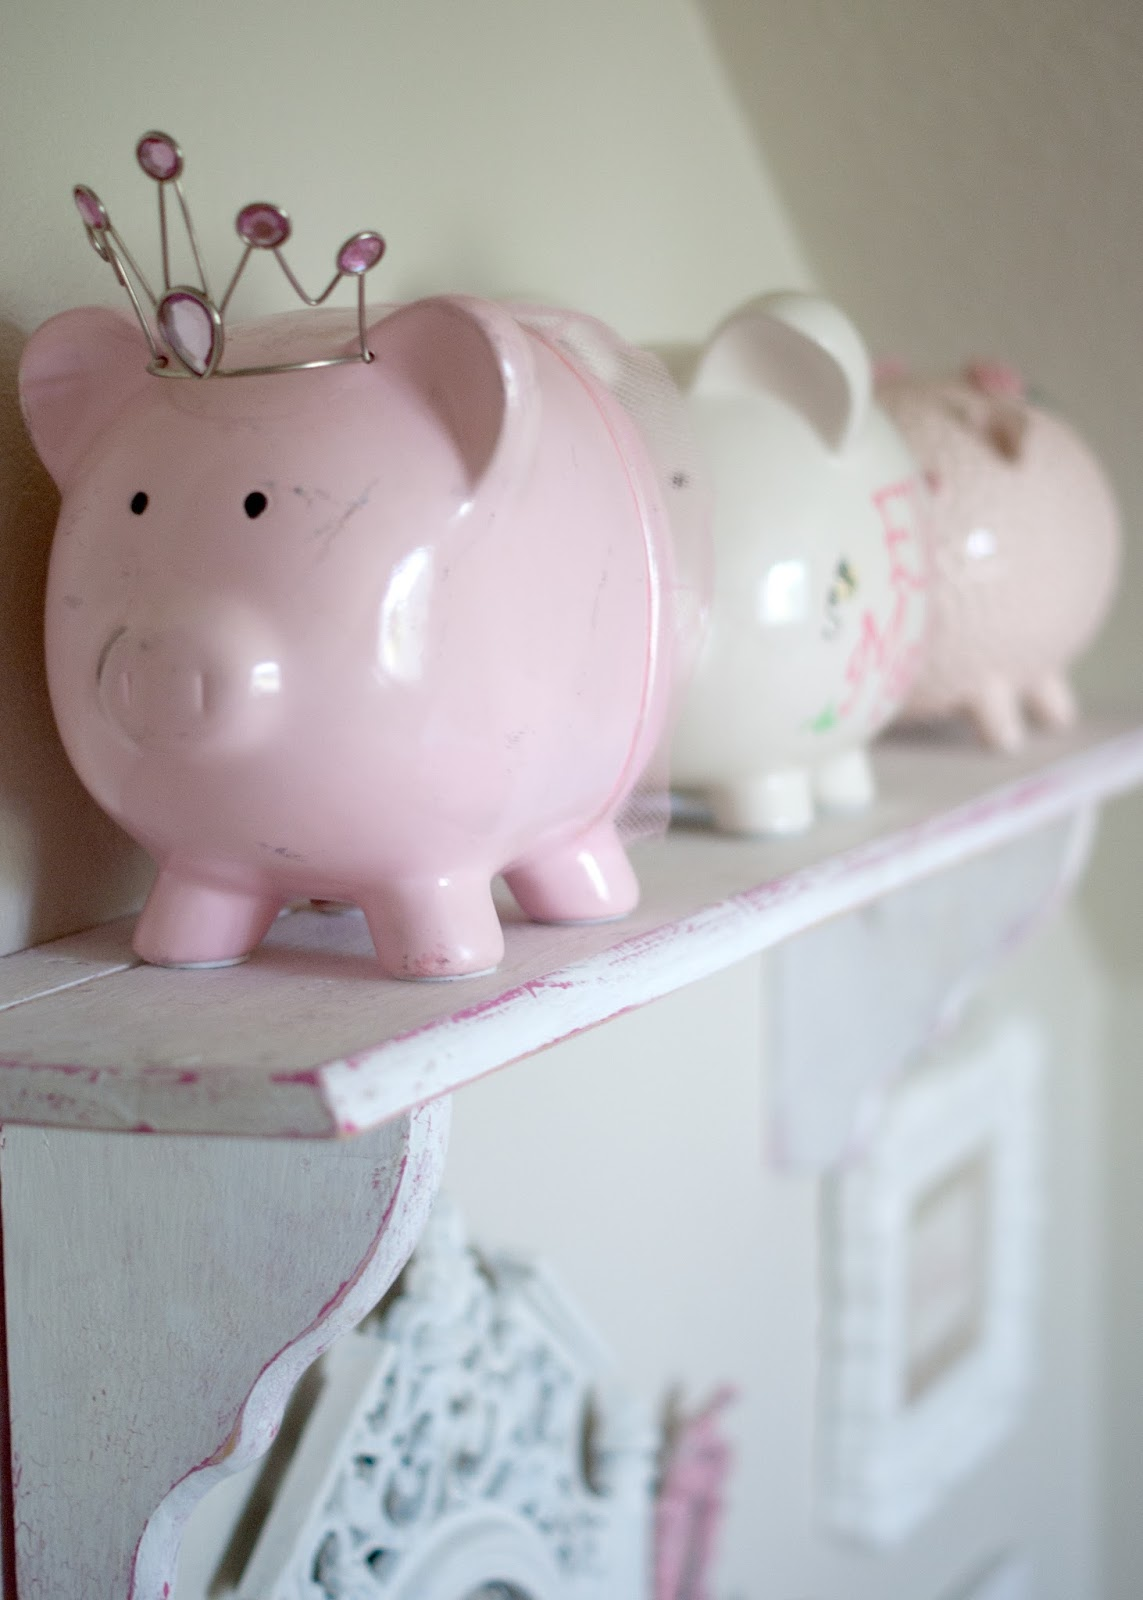 Piggy banks and shelf